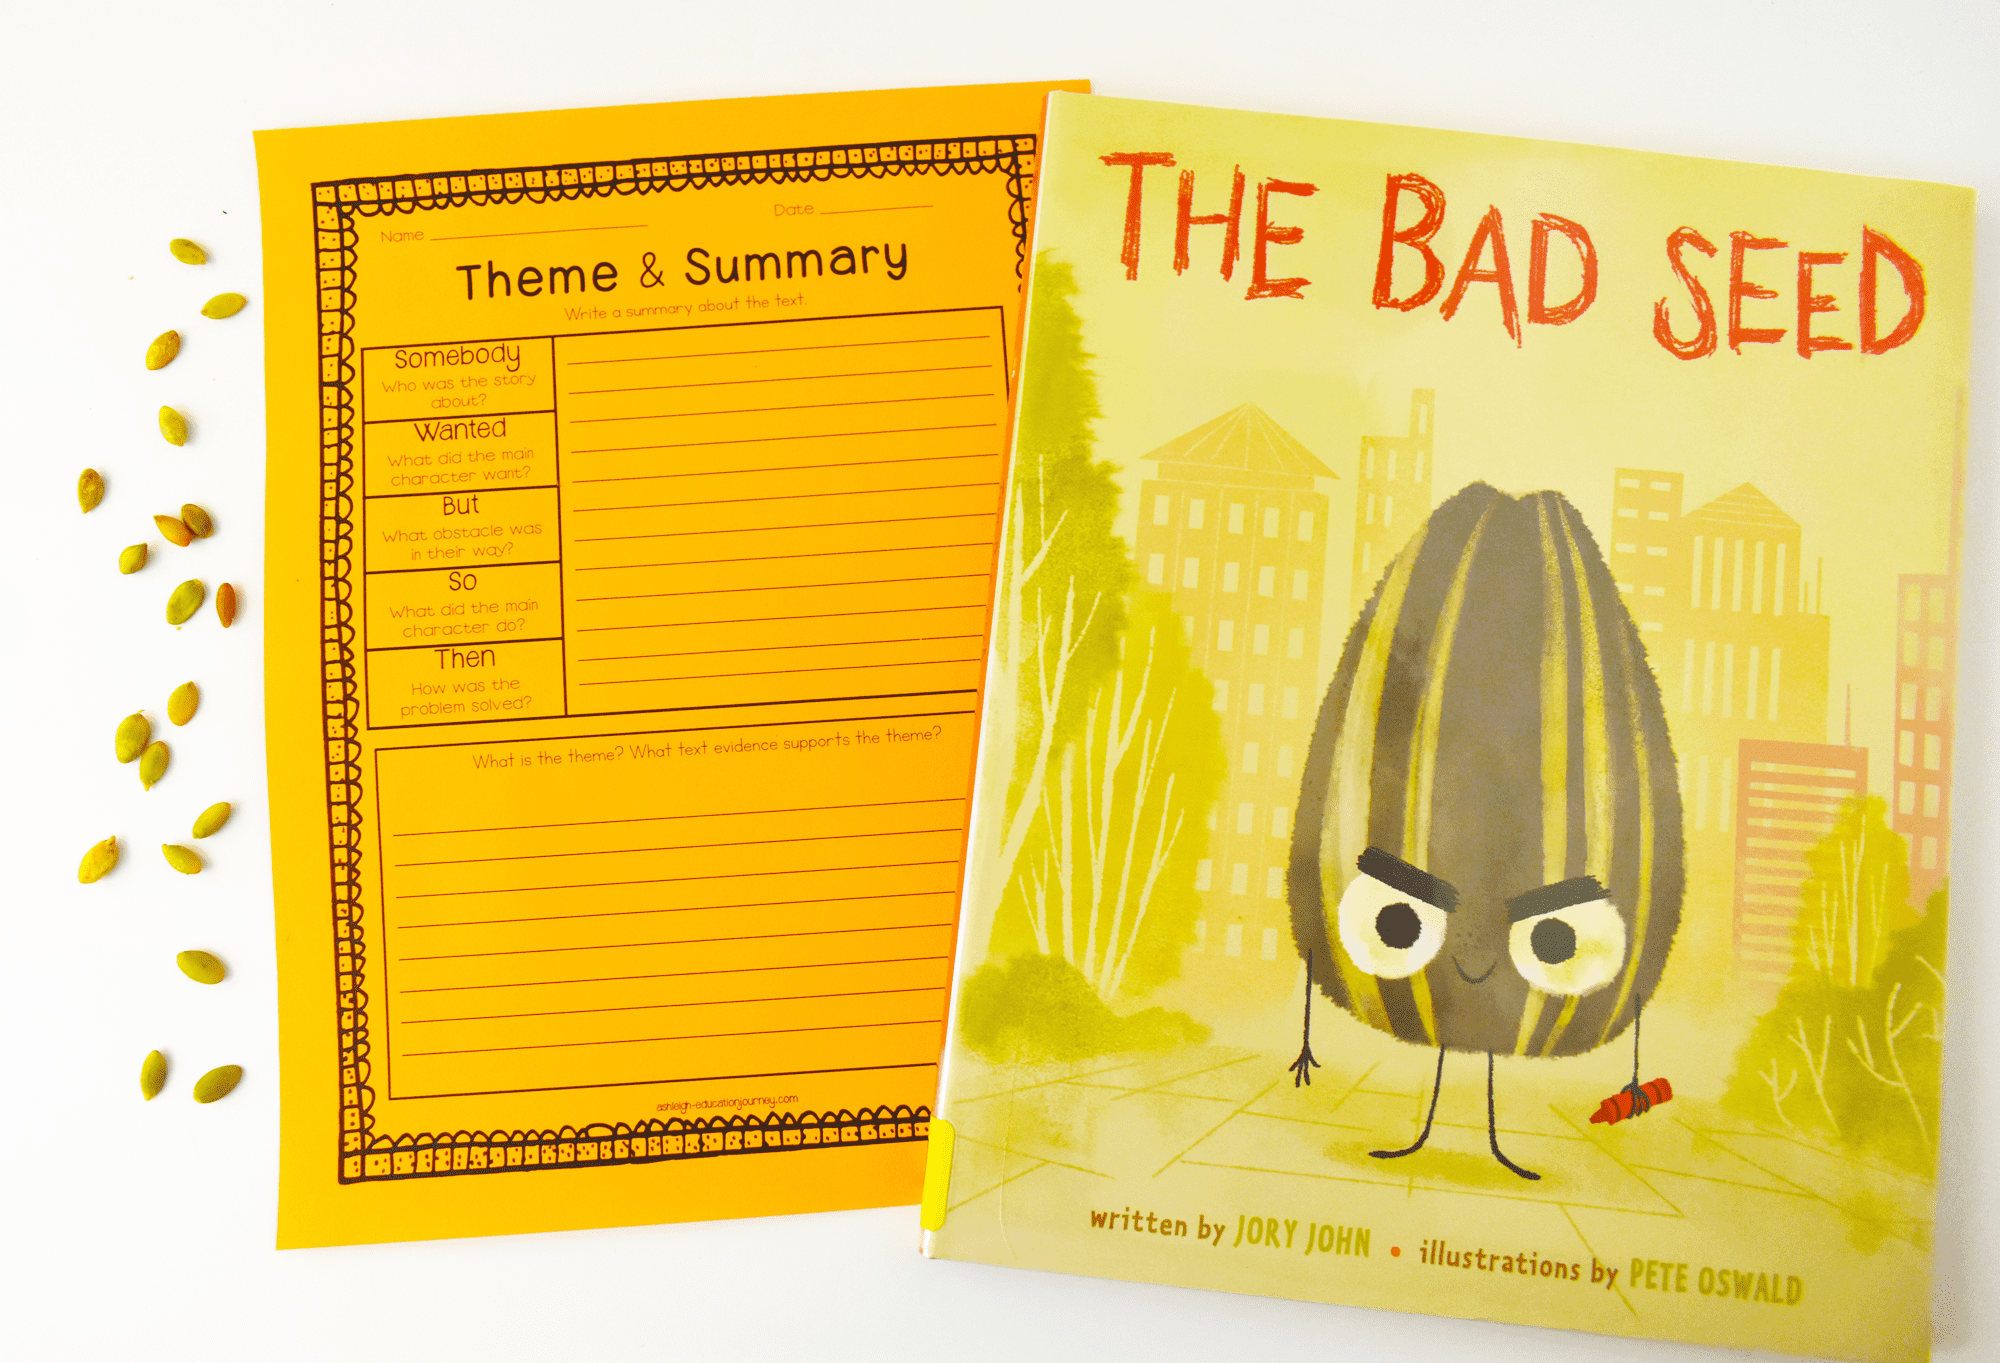 Theme & Summary Worksheet for teaching theme and The Bad Seed book cover.